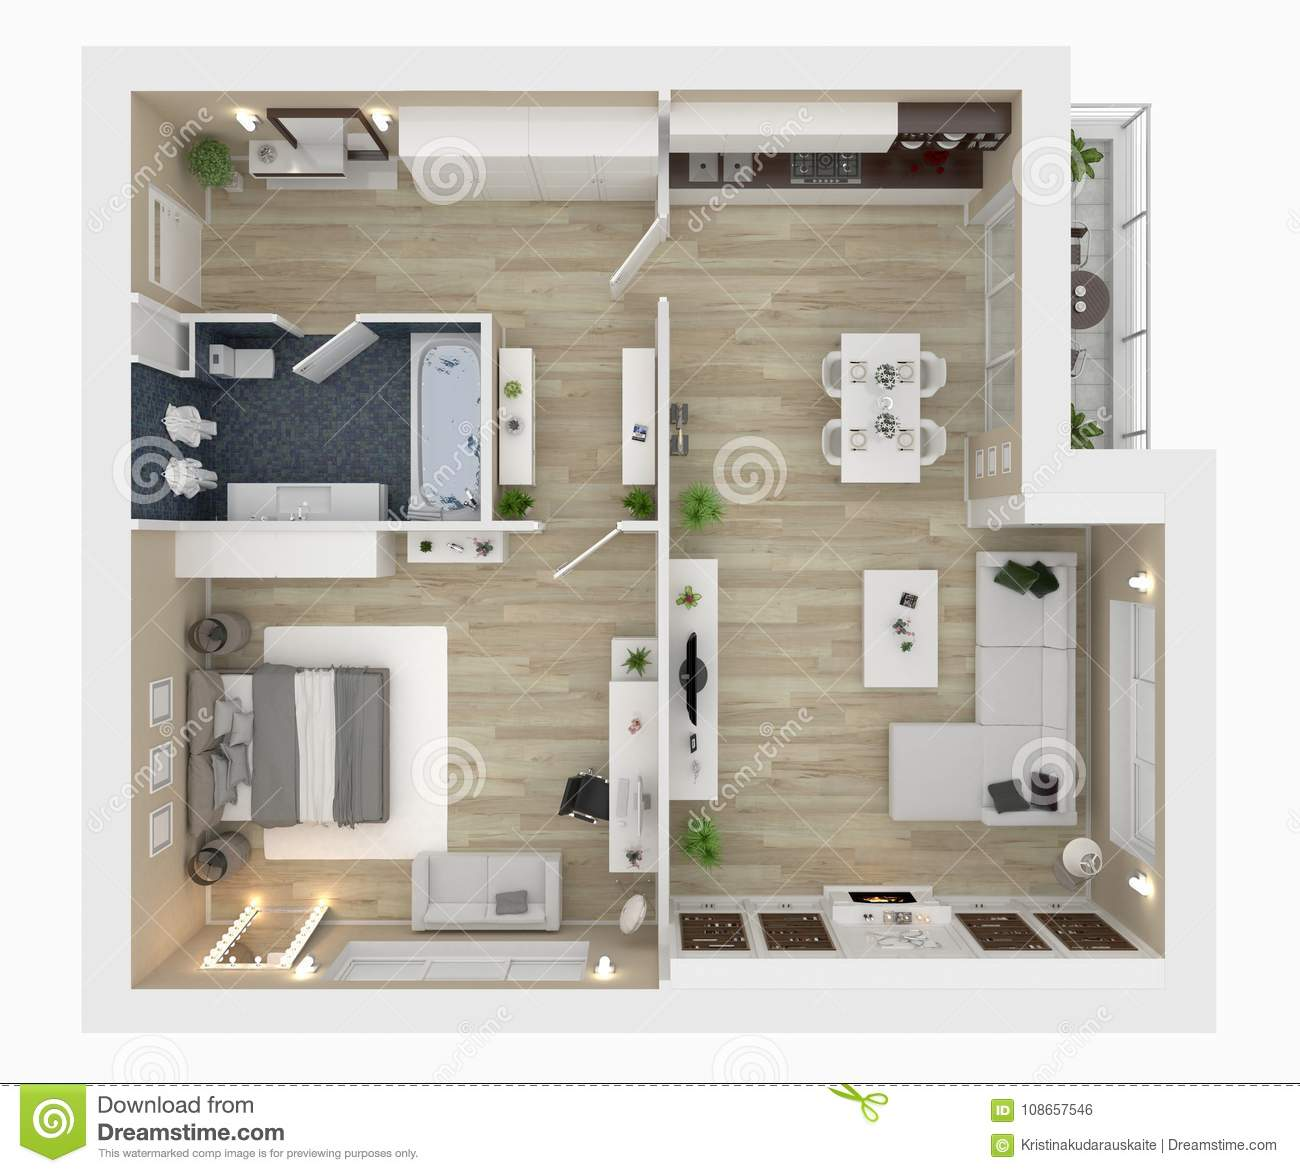 Floor Plan Of A House View 3d Illustration Stock Illustration Illustration Of Isolated Hall 108657546